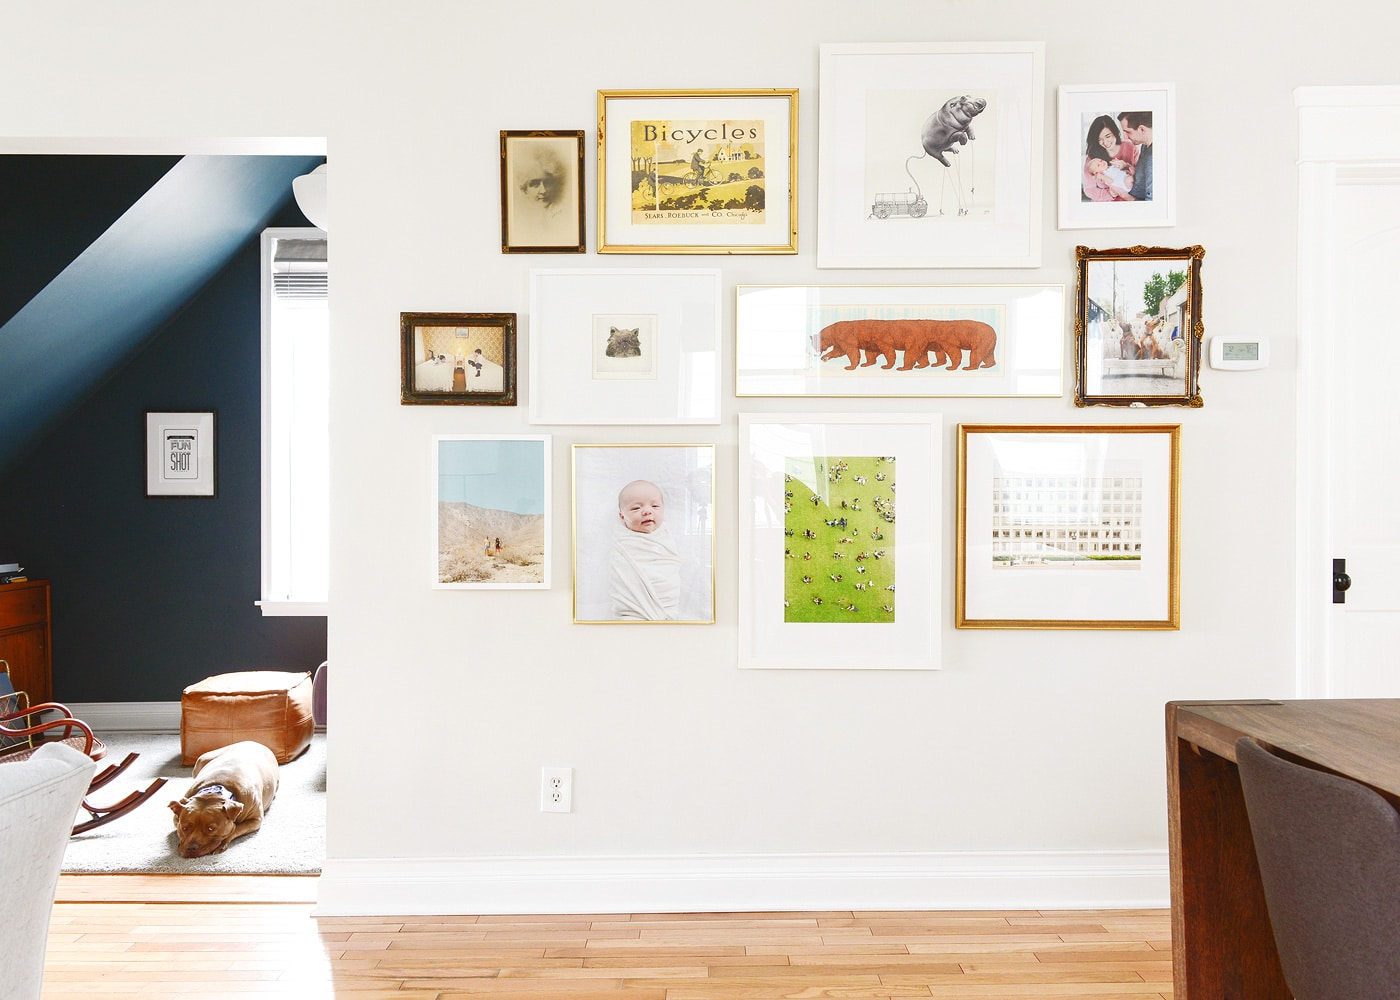 A Gallery Wall Update + Our Go-To Framing Guide - Yellow Brick Home